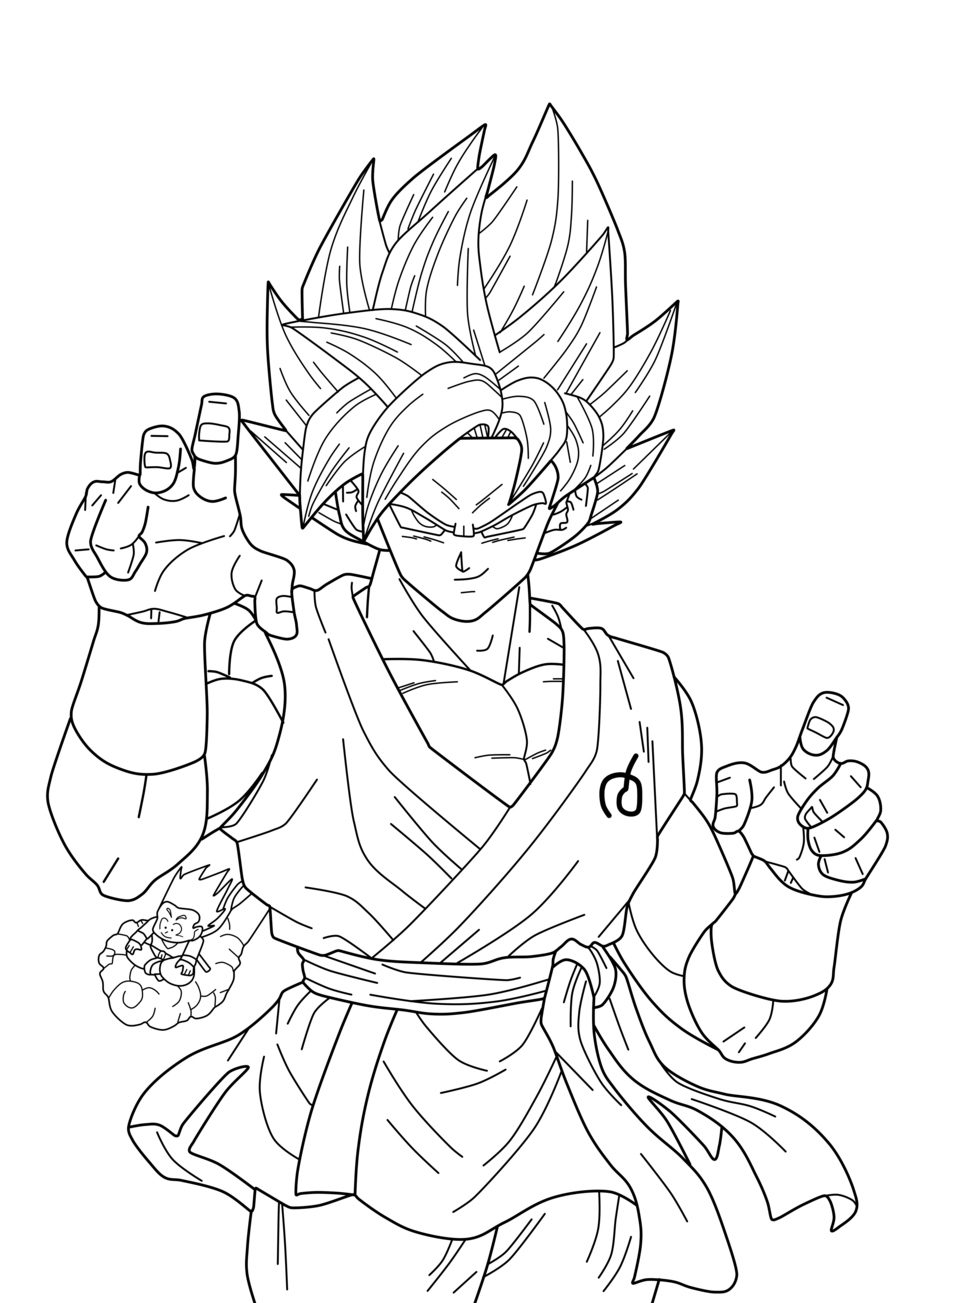 Facile dragon ball san goku super sayian blue coloriage dragon ball z coloriages pour enfants - Dessin dragon ball z facile ...